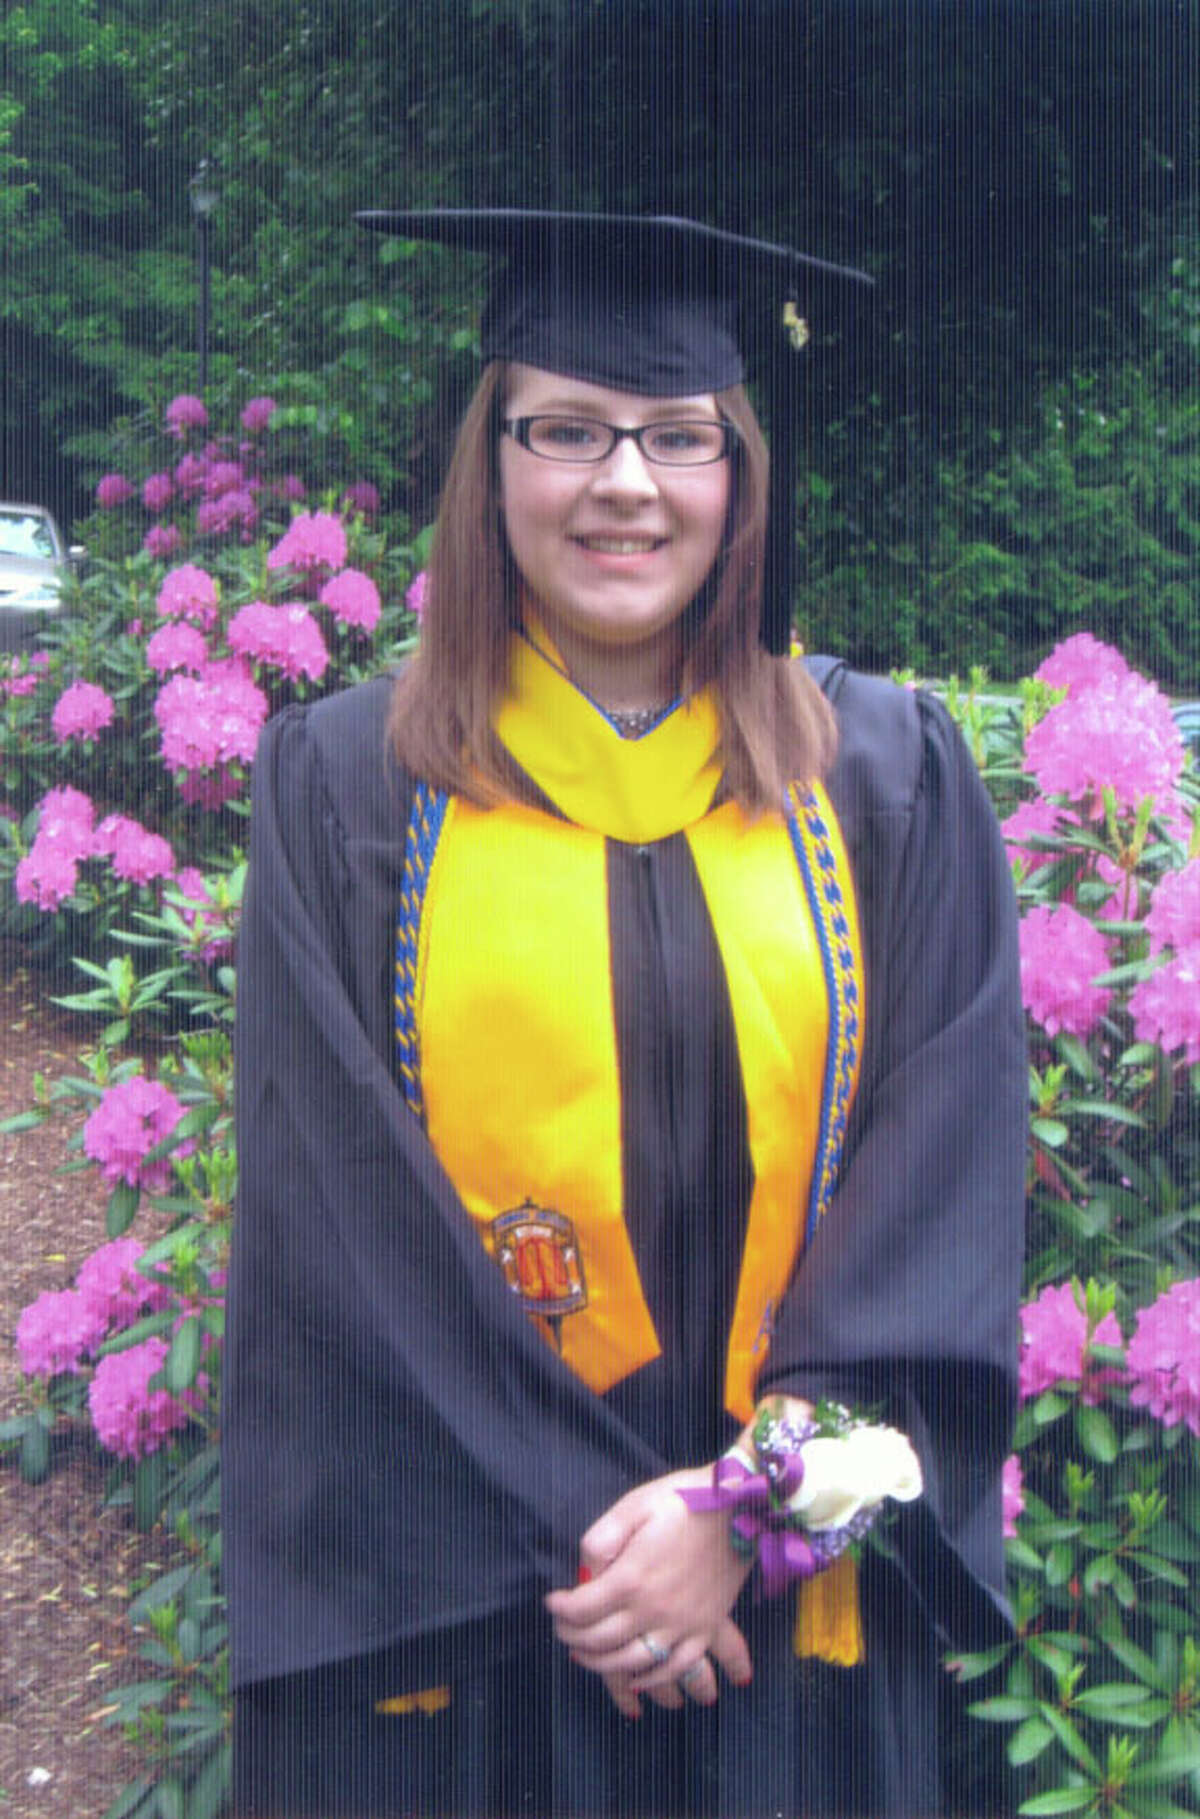 """Rachael Levine, 22, of Danbury, was adopted when she was 17. """"I never felt as loved, cared about, or provided for like I felt once I met my adopted family,"""" she said. Levine graduated magna cum laude with a degree in justice and law administration from Western Connecticut State University in 2010. She said positive experiences with the foster care system inspired her to pursue a career as an attorney for child protective services."""